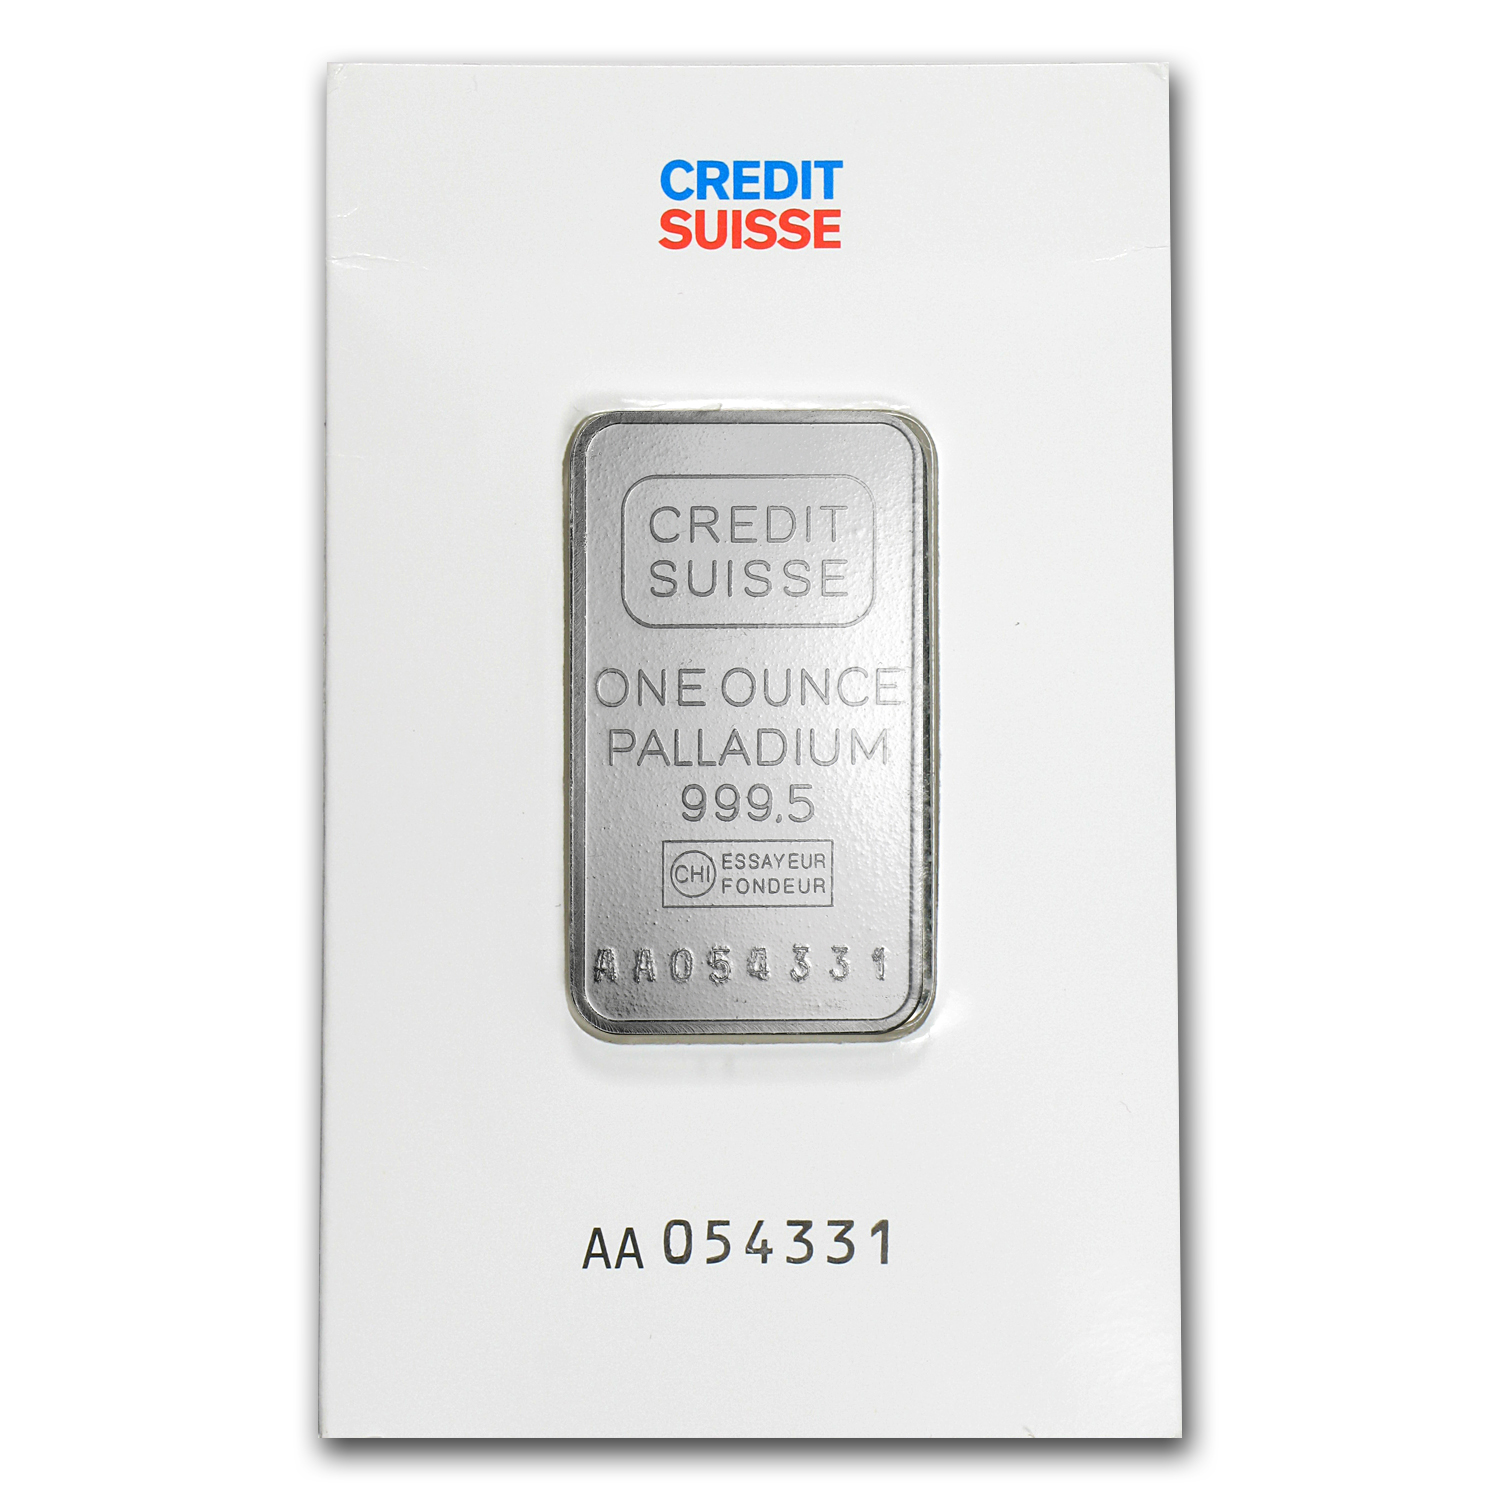 1 oz Palladium Bar - Credit Suisse (In Assay)